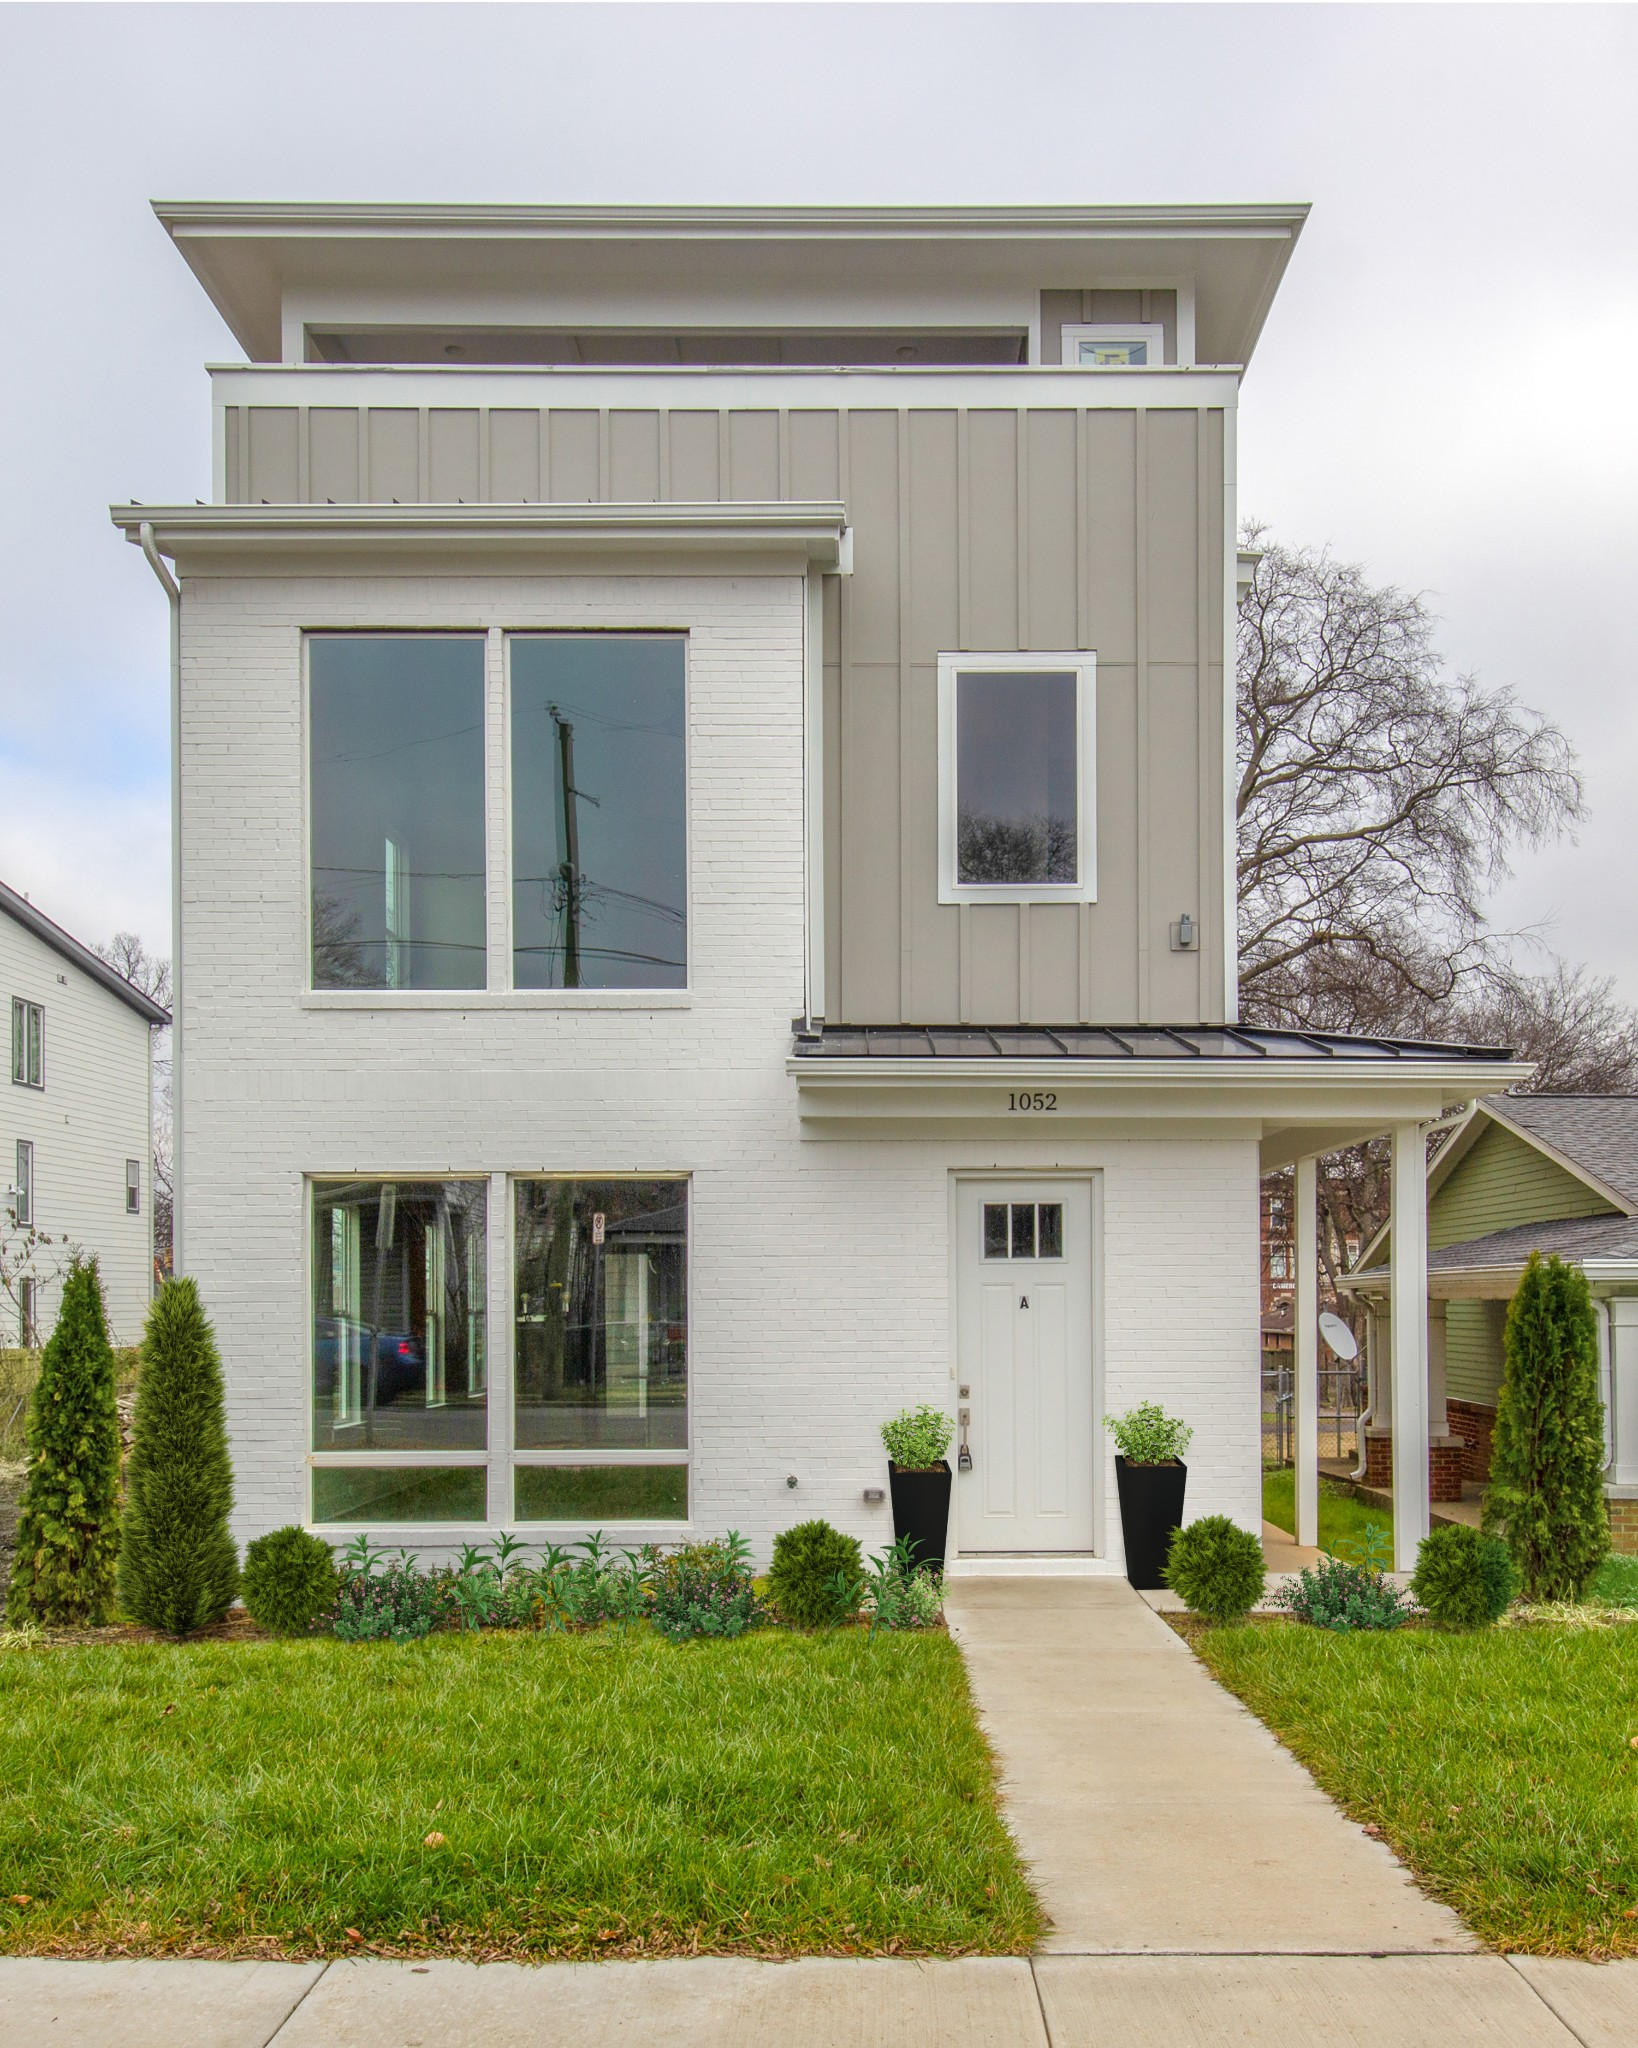 1052A 2nd Ave, S, Nashville, TN 37210 - Nashville, TN real estate listing